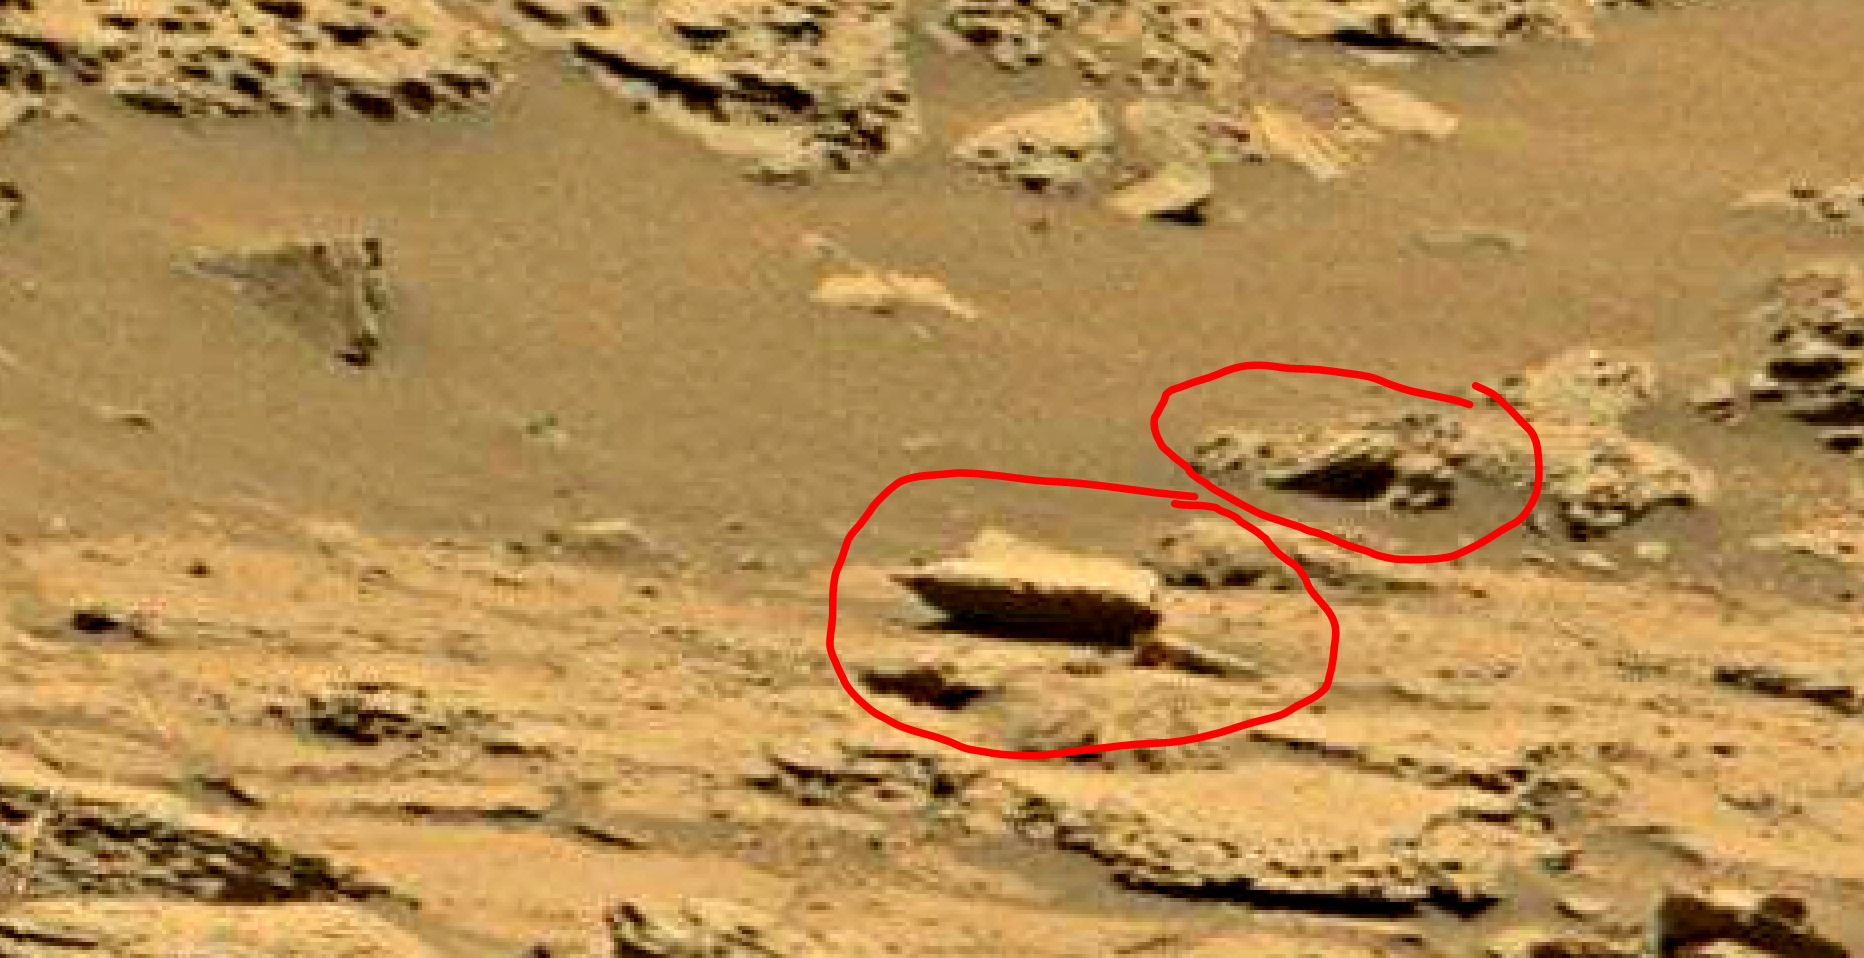 mars sol 1353 anomaly-artifacts 55 was life on mars